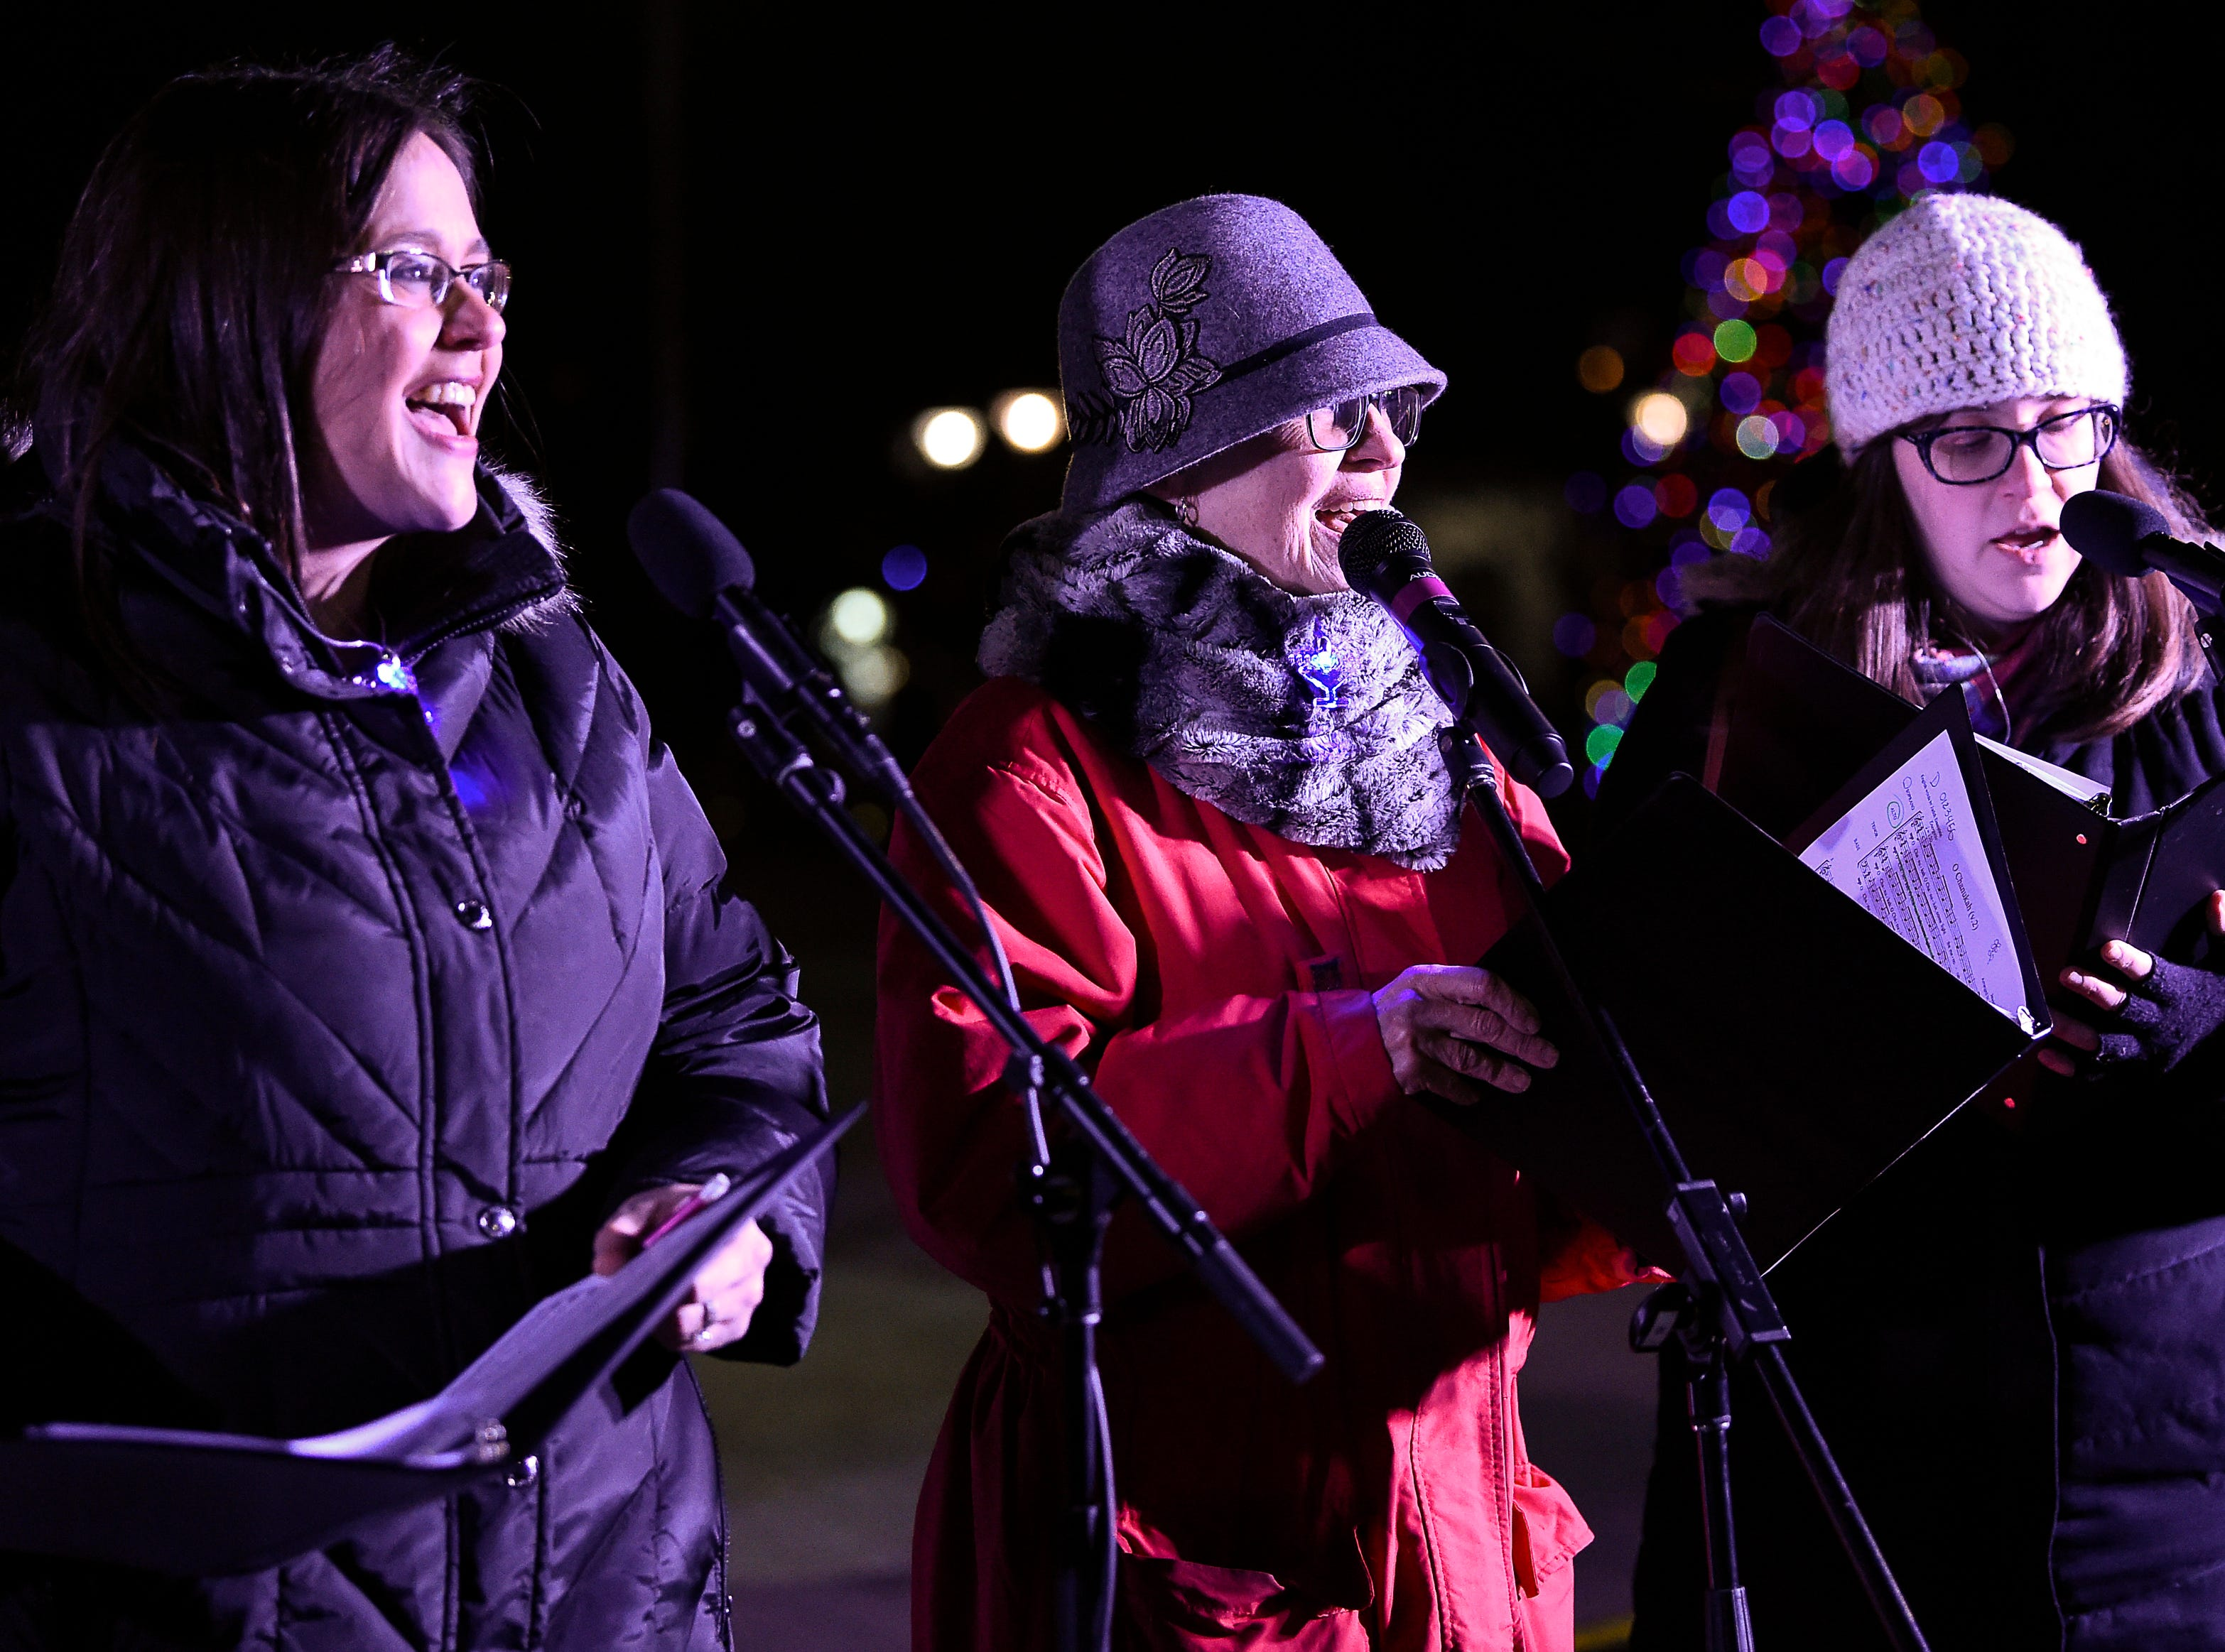 Performers sing Chanukah songs during a menorah lighting ceremony at Public Square Park Tuesday, Dec. 4, 2018, in Nashville, Tenn.